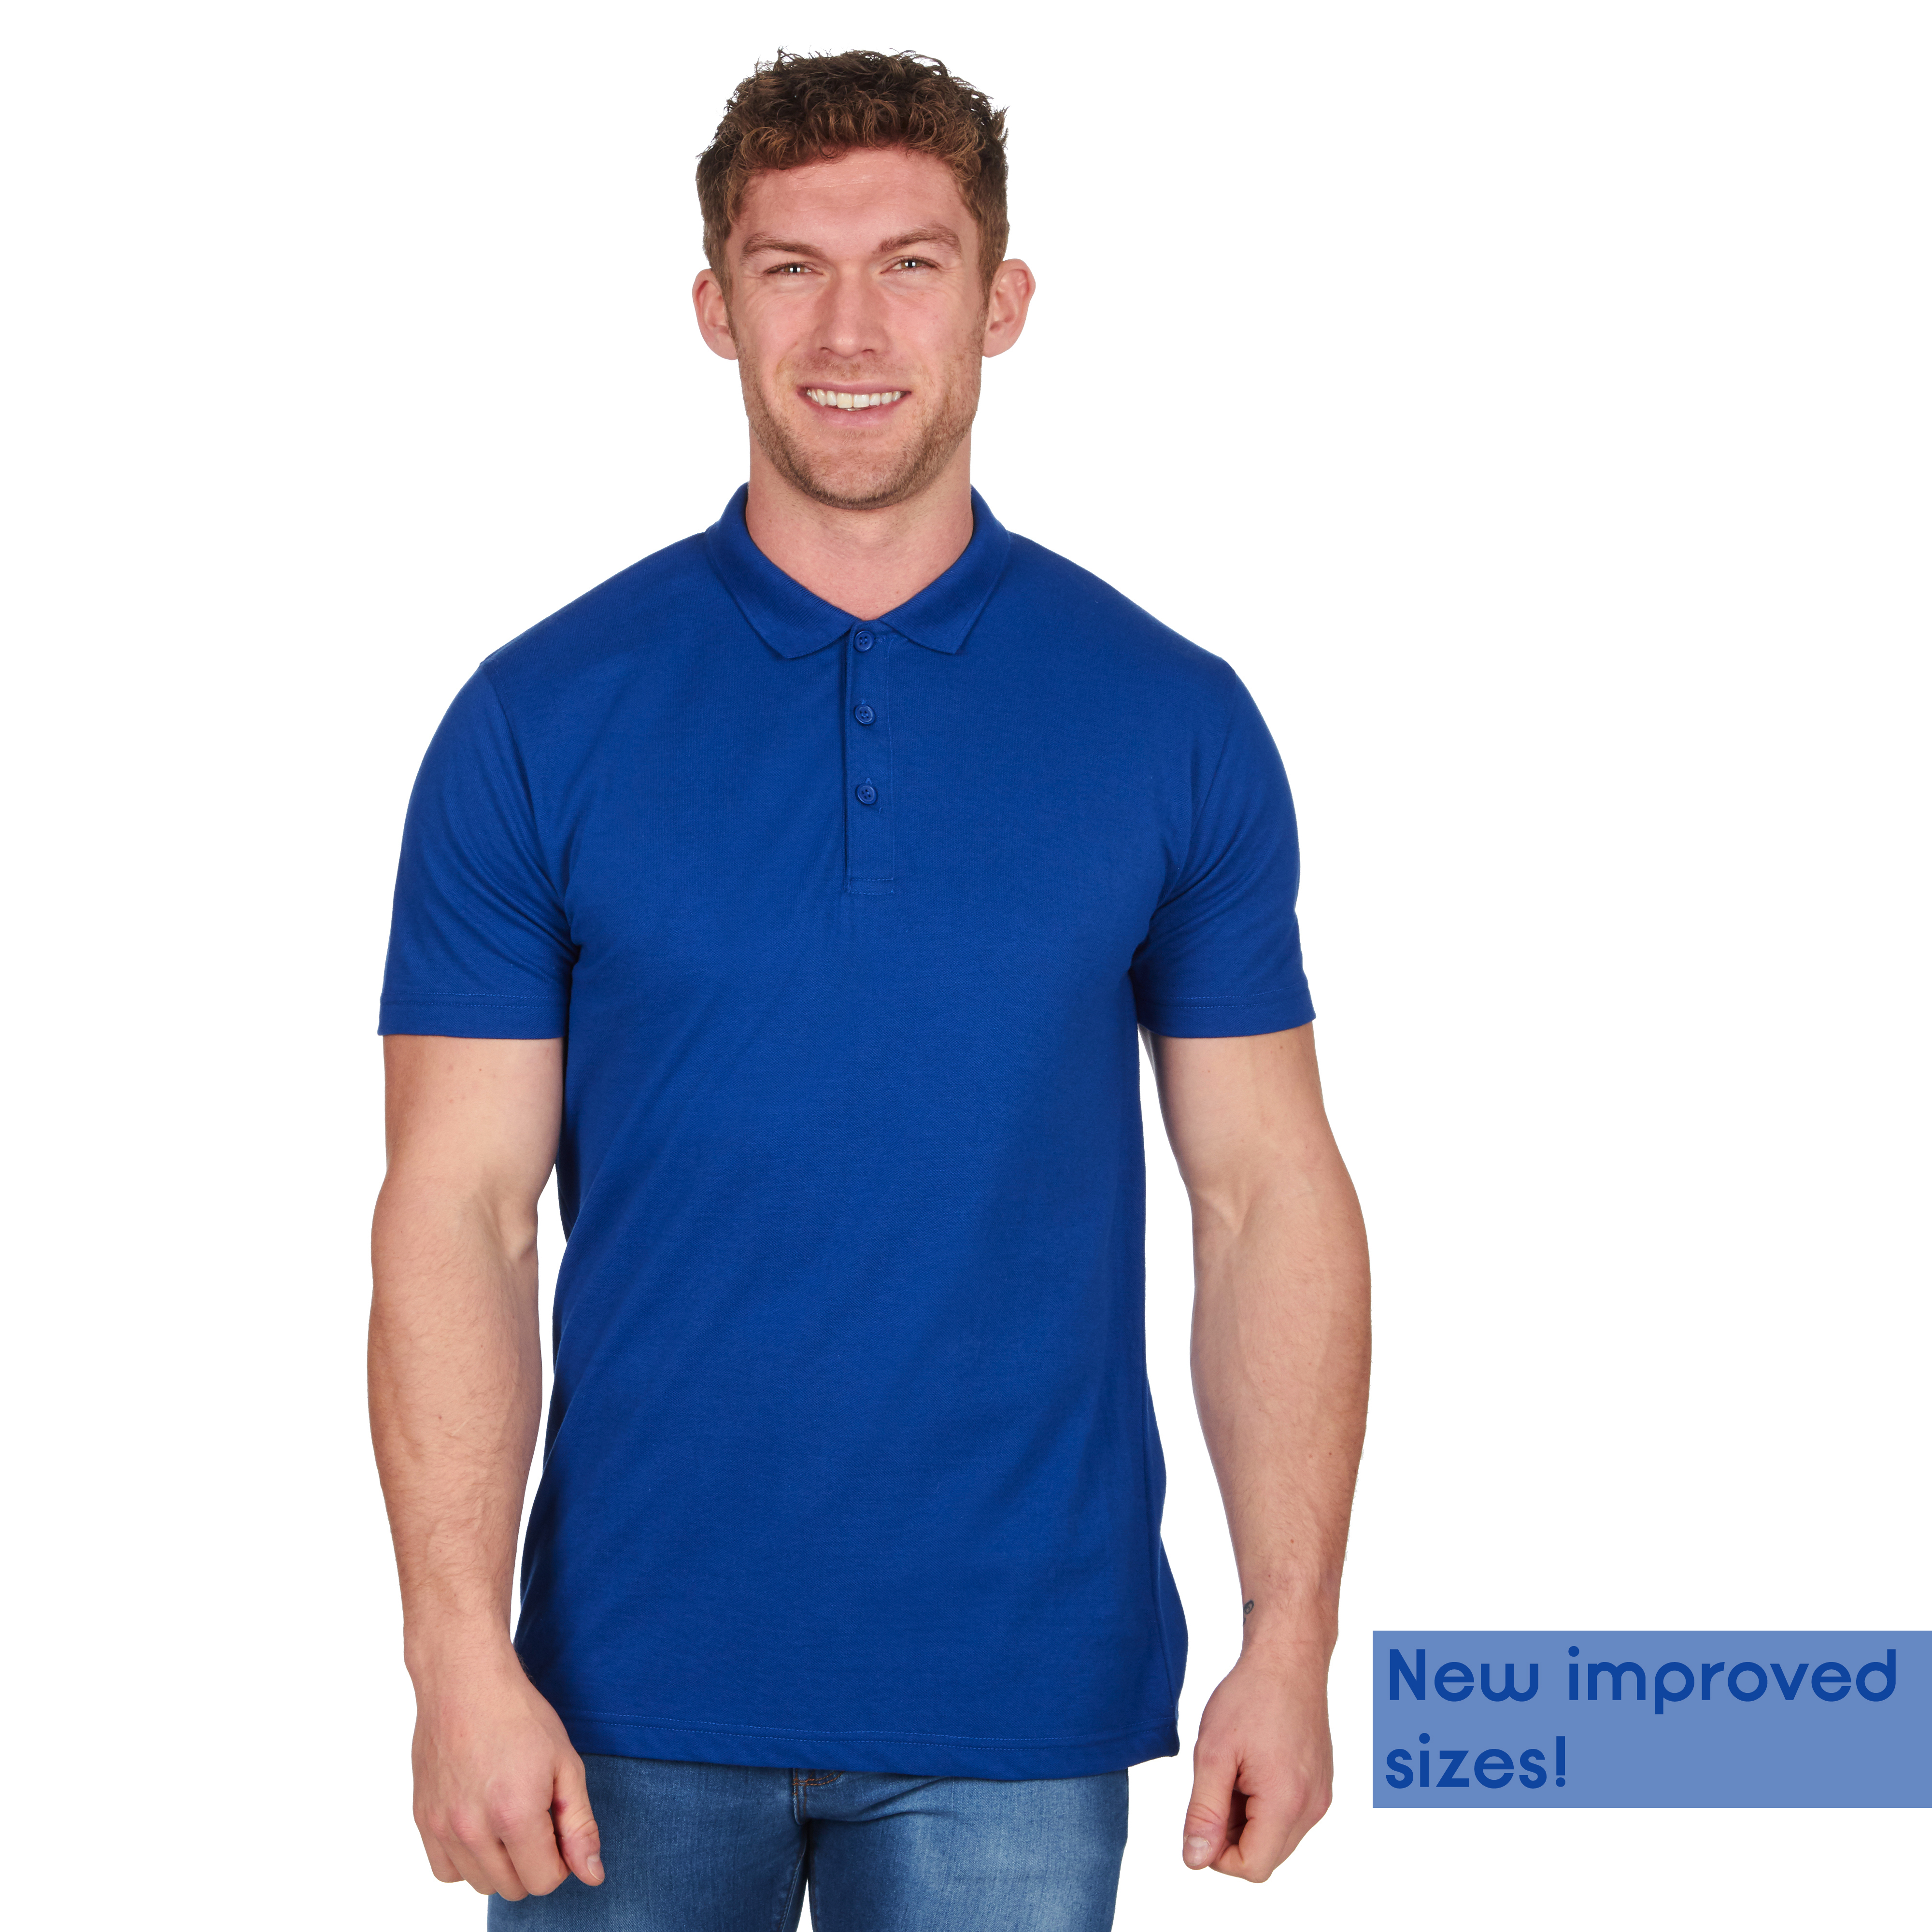 Mens-Classic-Polo-Top-Plus-Size-T-Shirt-Plain-Shirt-Big-And-Tall-Short-Sleeve thumbnail 44